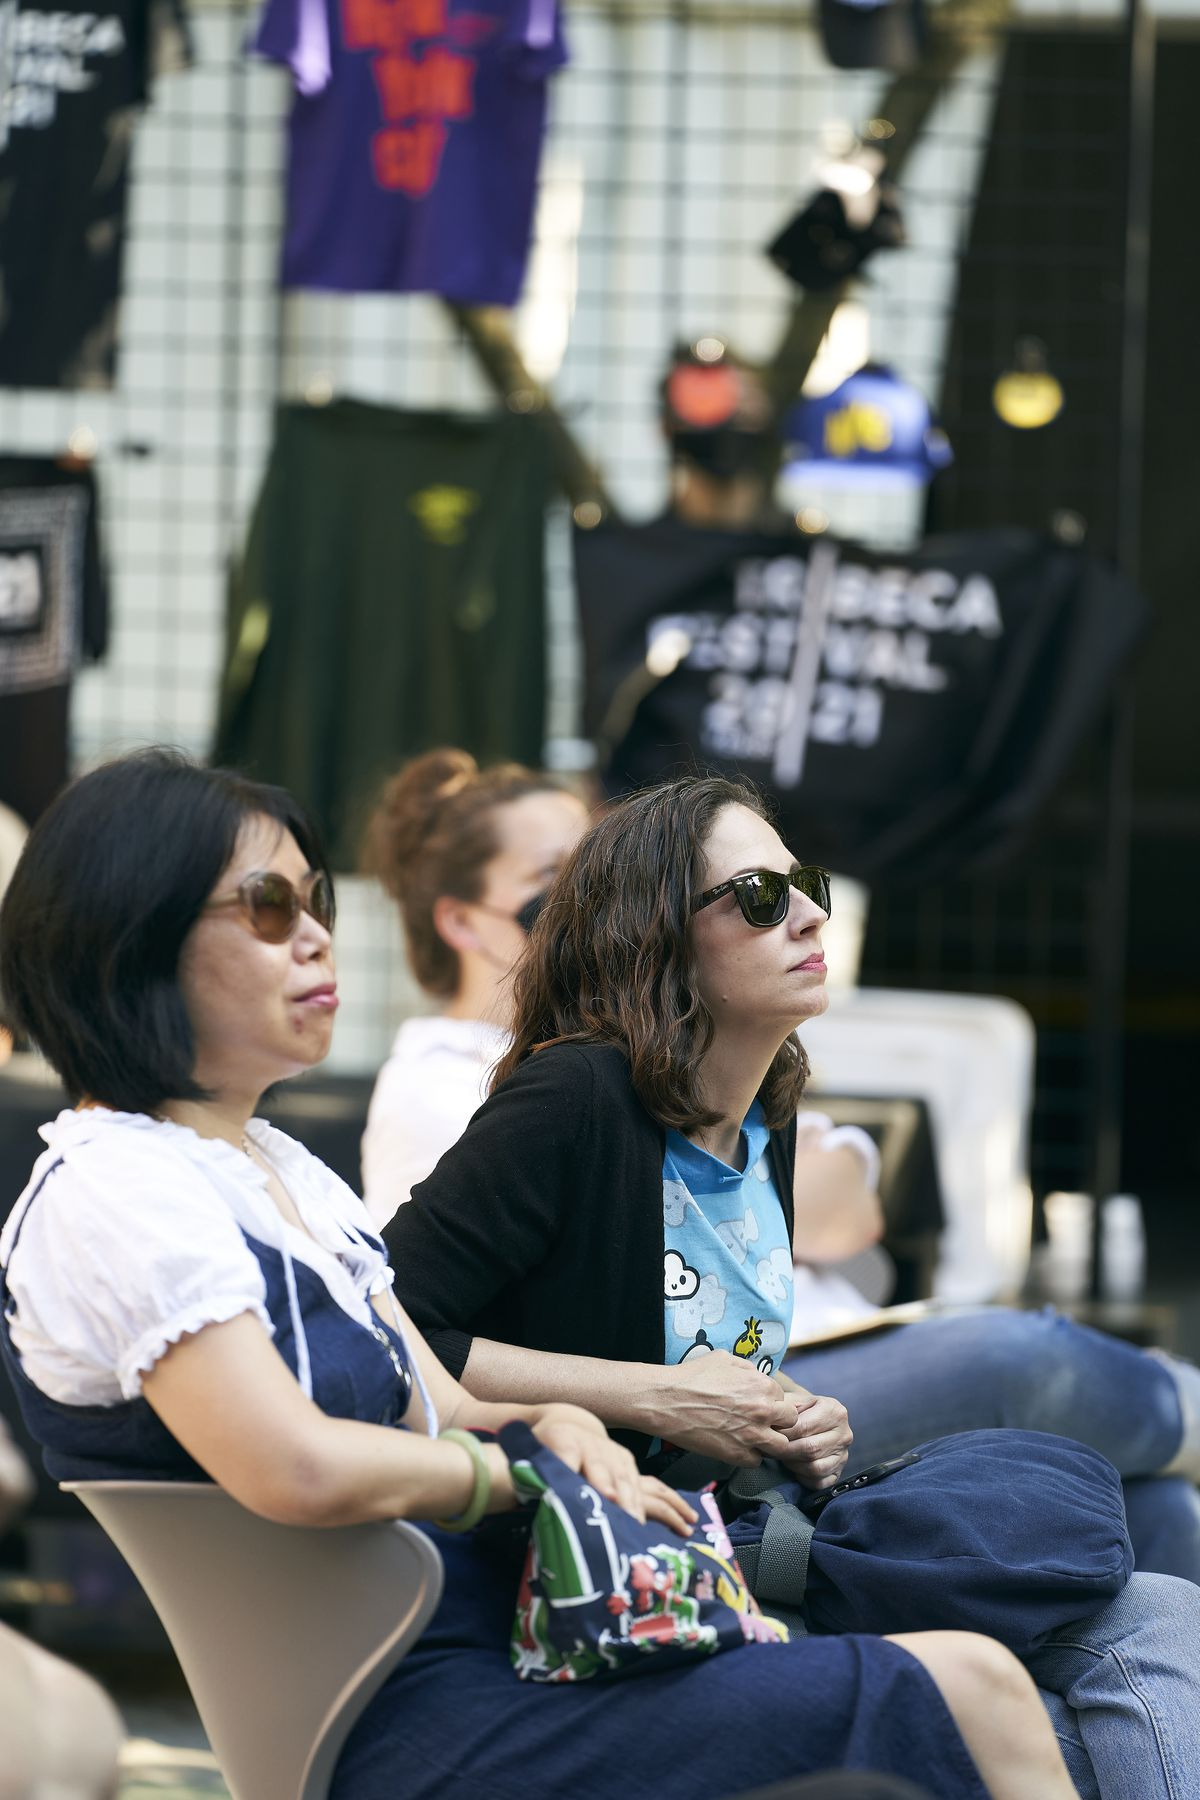 Two women in the foreground wearing sunglasses look up at the screen.